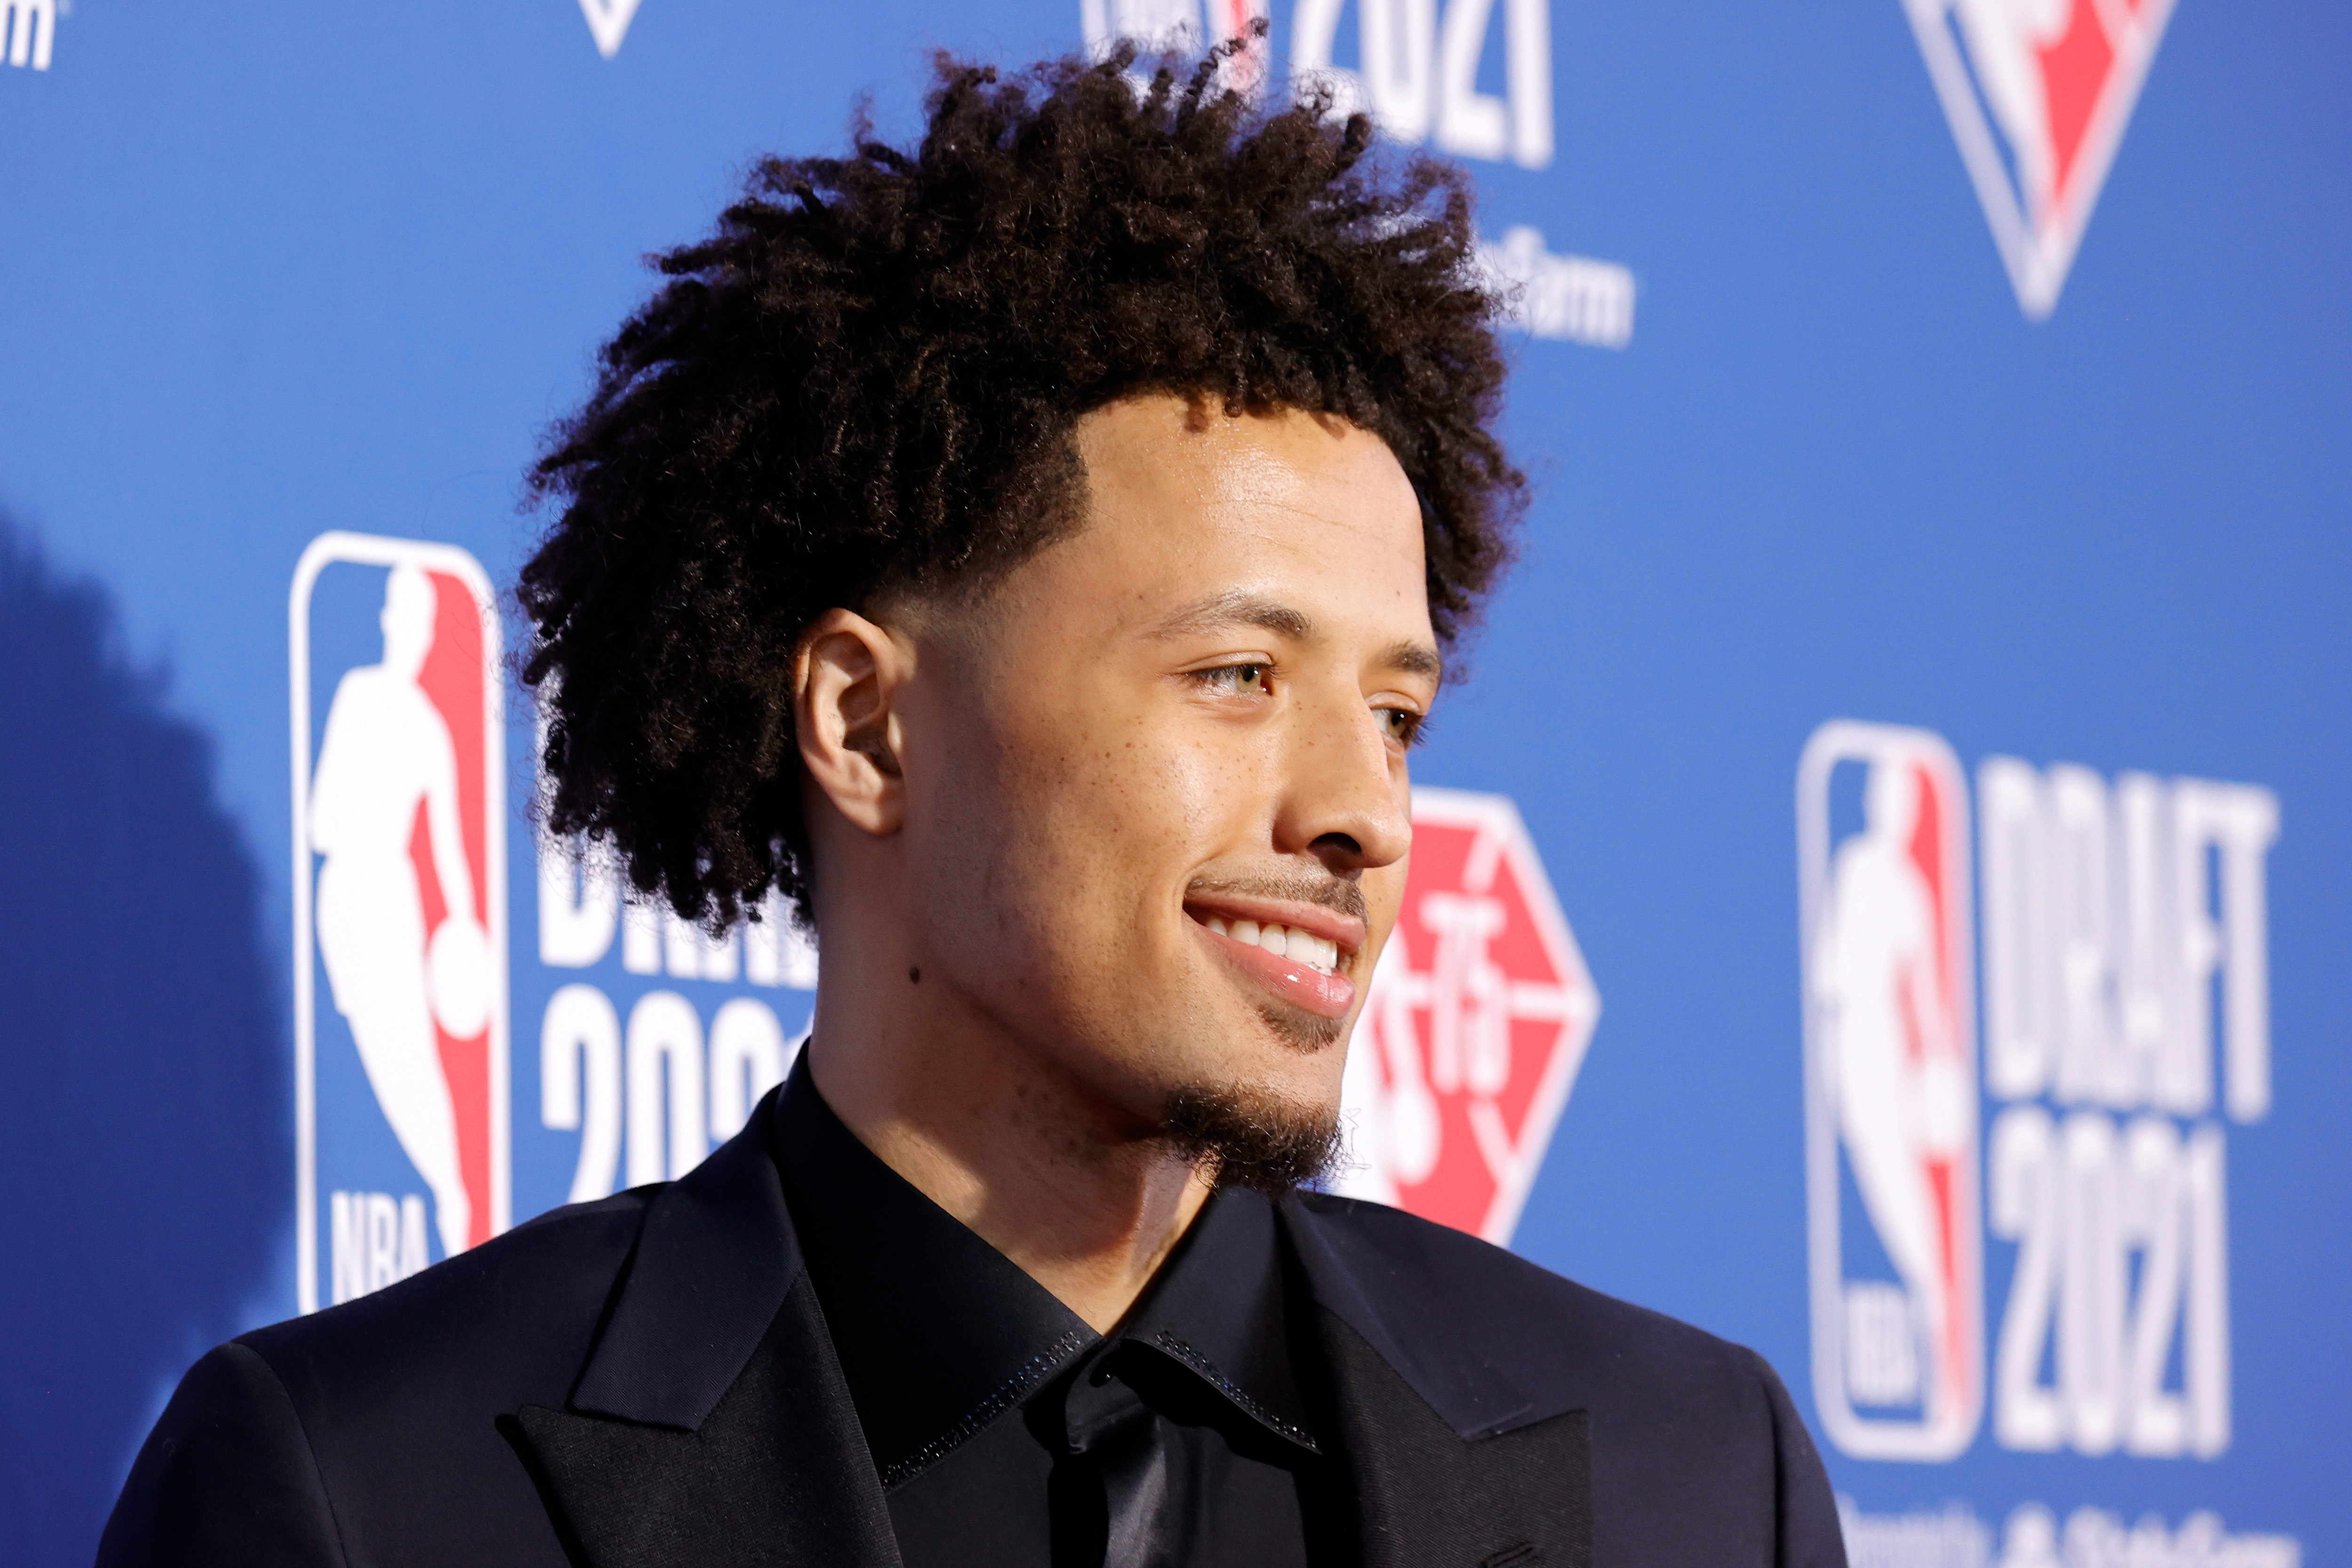 Cade Cunningham poses for photos on the red carpet during the 2021 NBA Draft at the Barclays Center on July 29, 2021 in New York City.